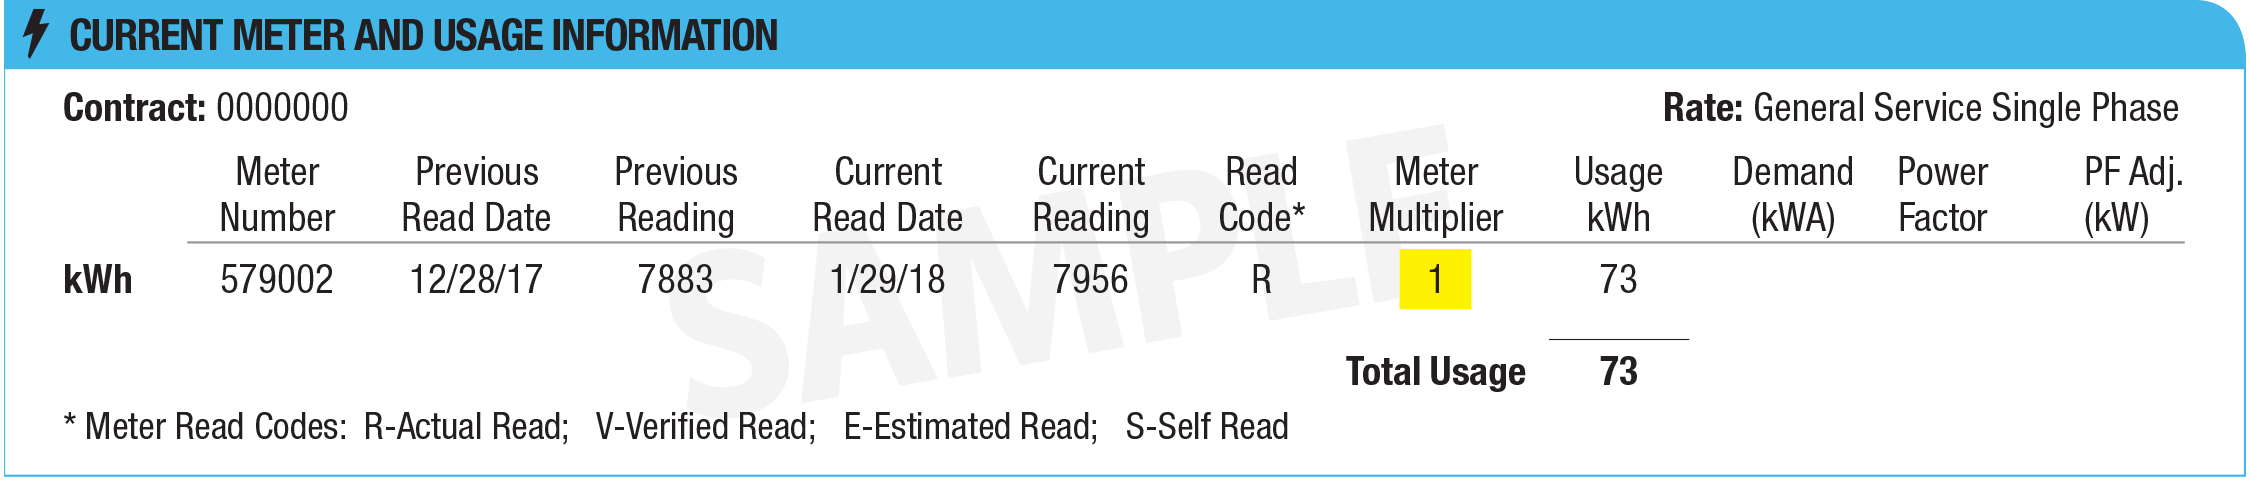 Reading reflects the full kWh usage.